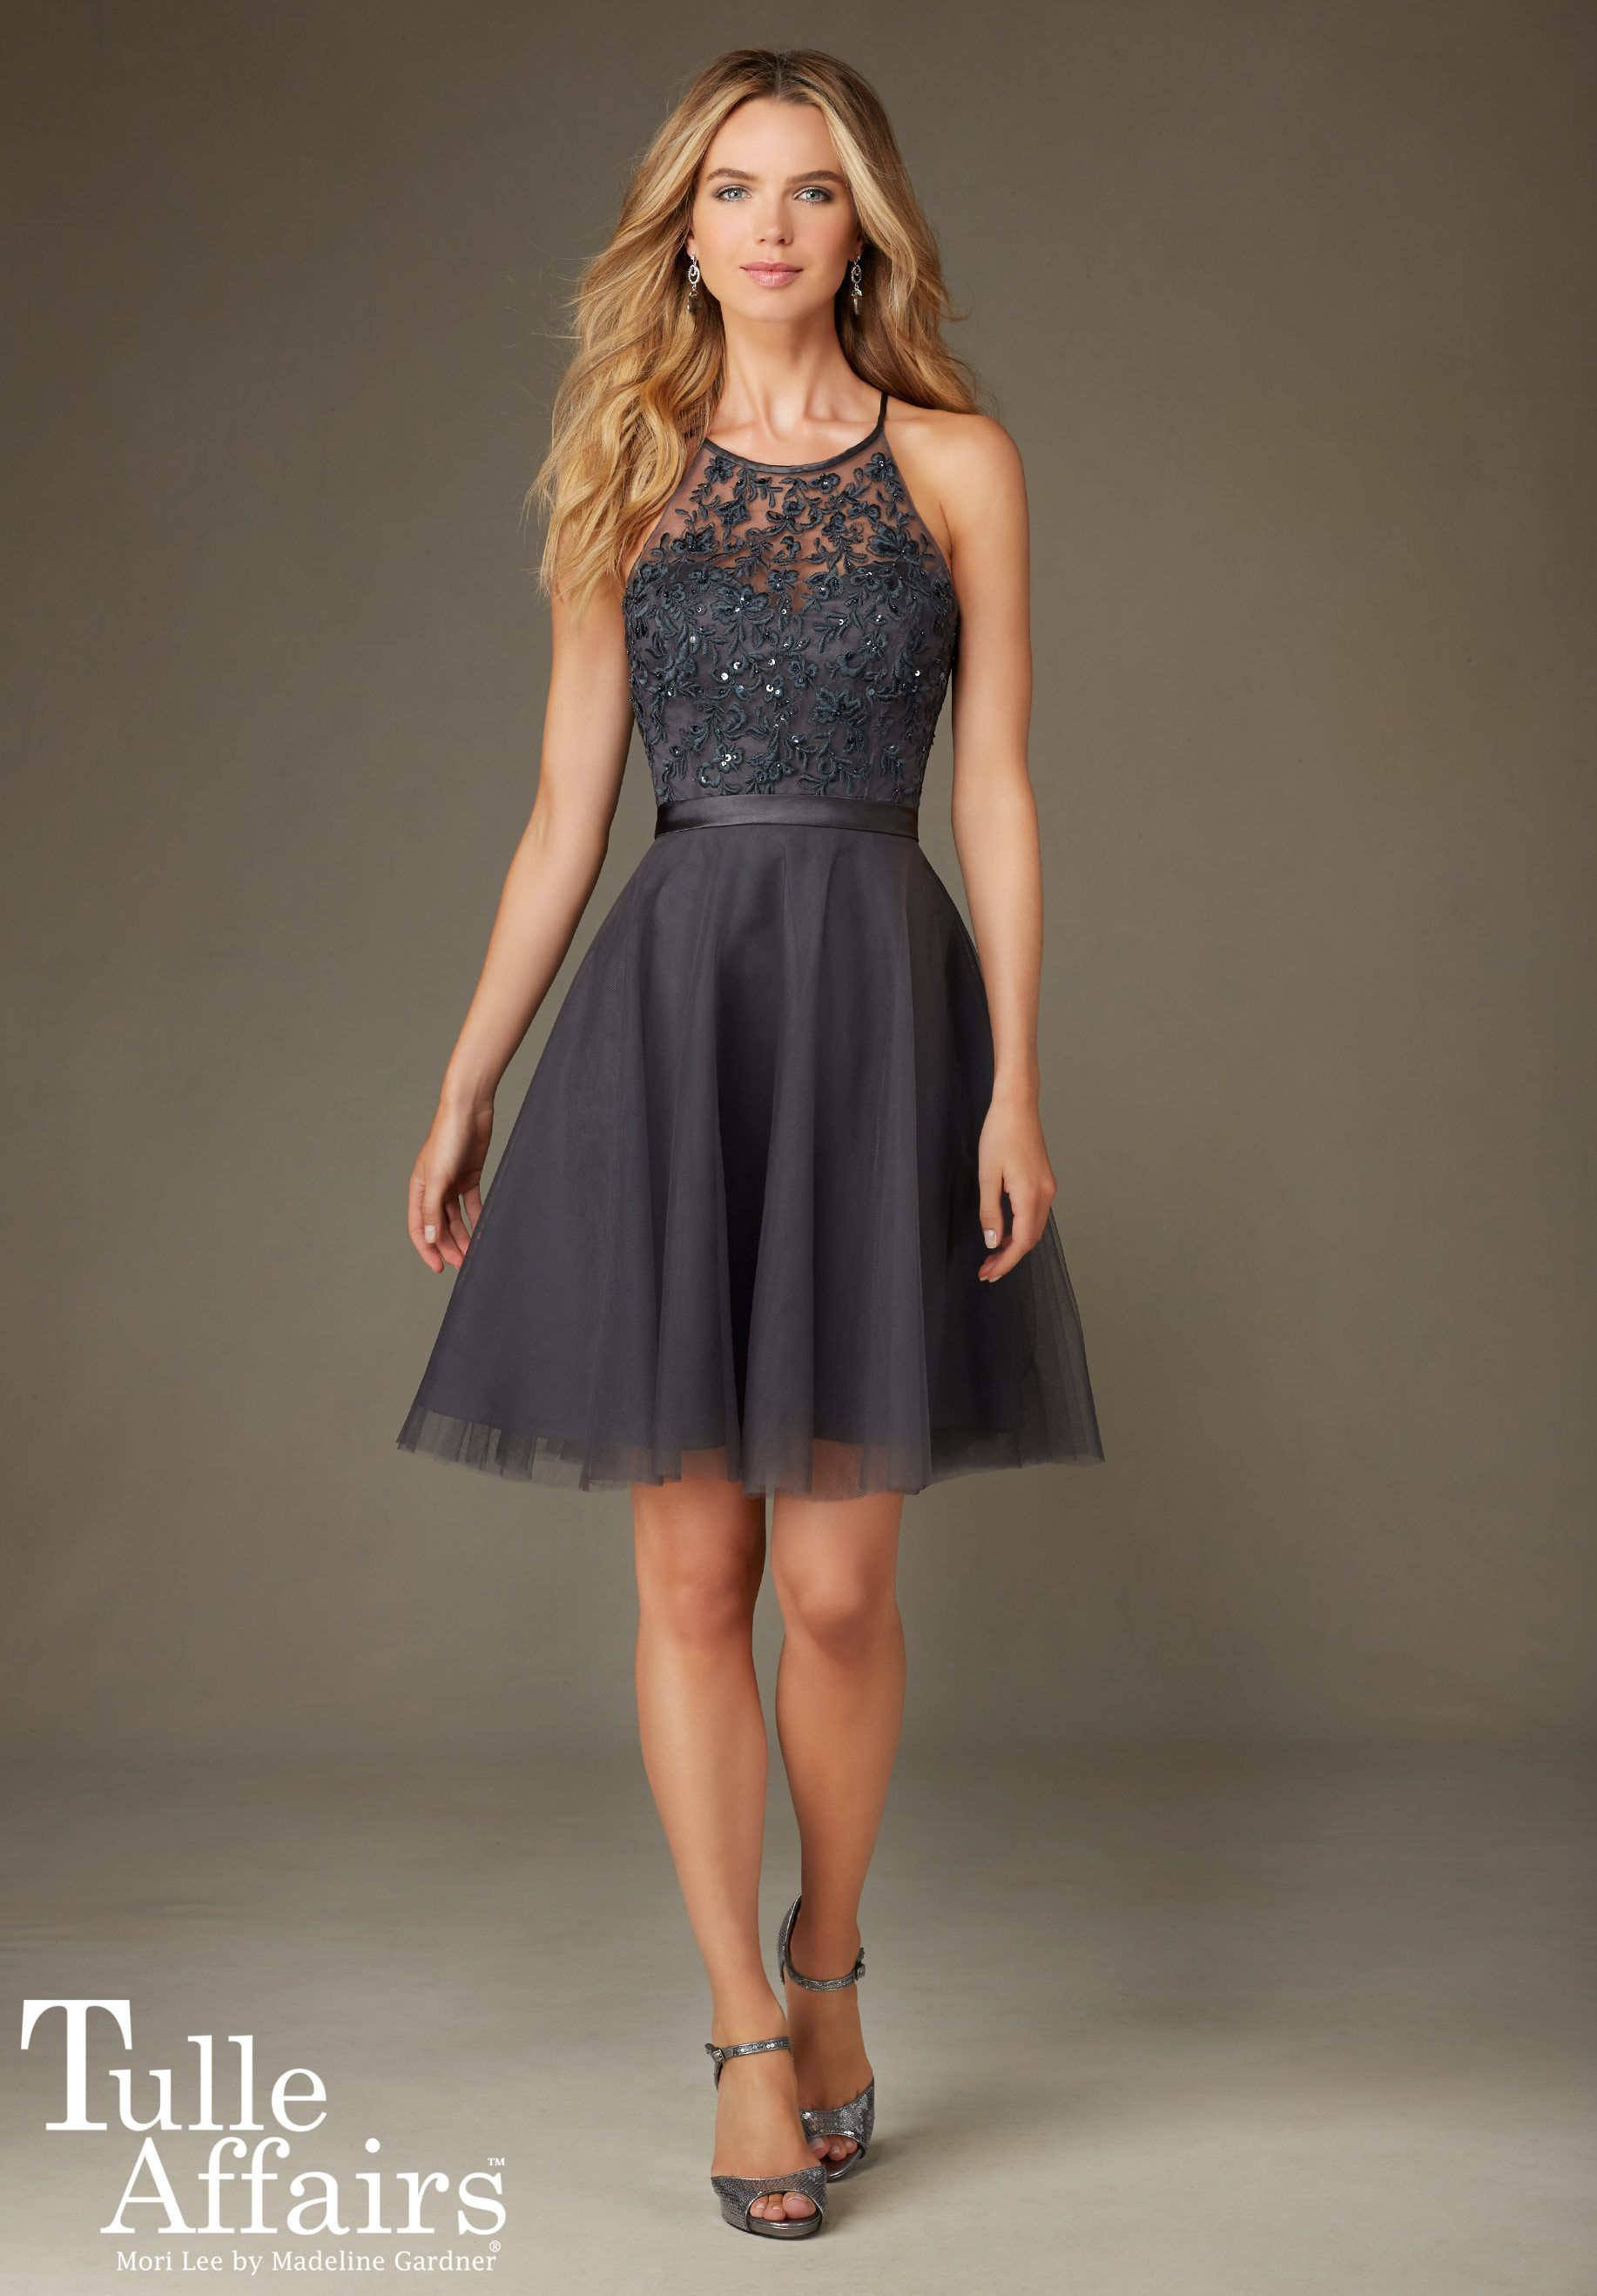 Bridesmaids Dresses - Tulle Affairs Tulle with Embroidery and ...